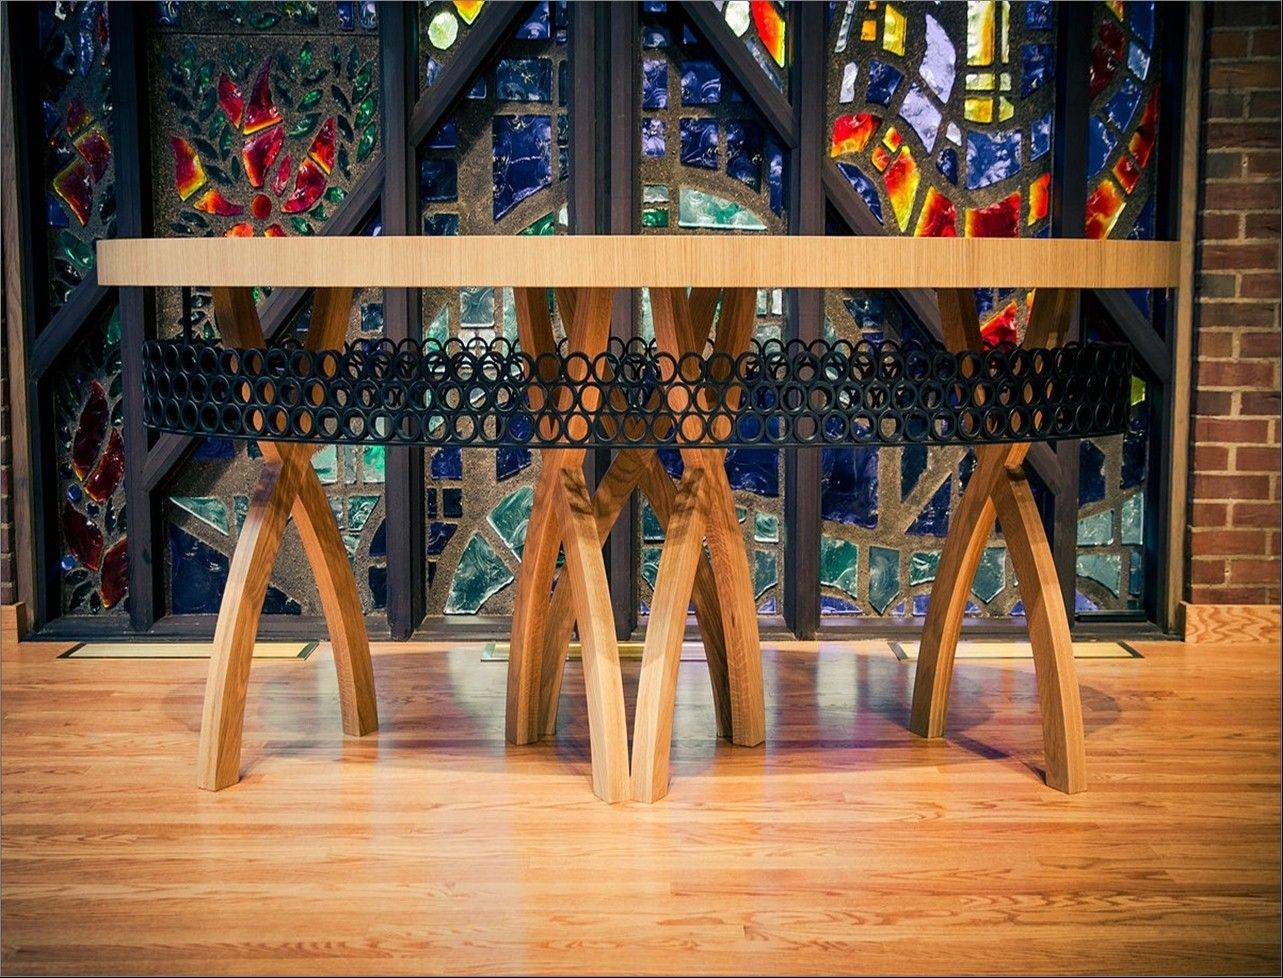 Communion table designed by Sara Reich for First United Methodist Church of Arlington Heights.